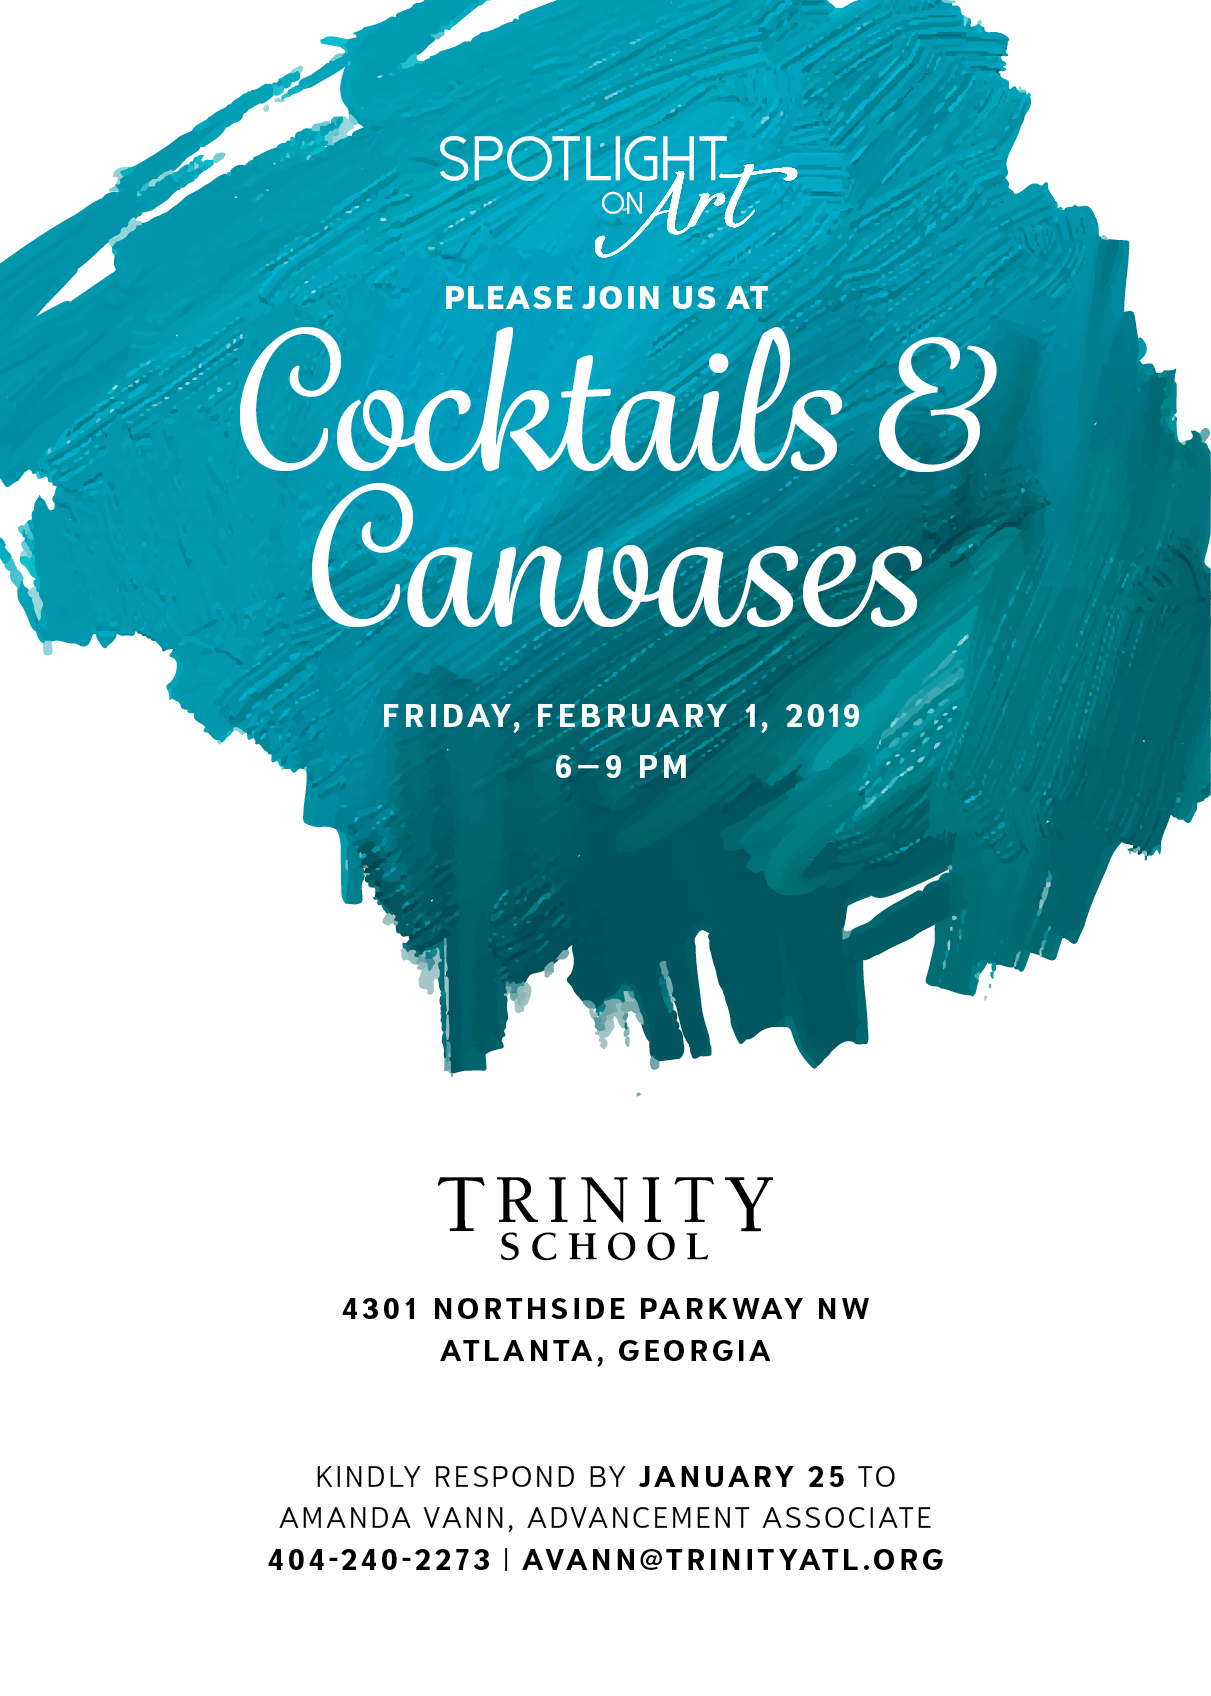 Cocktails & Canvases_121220182.jpg